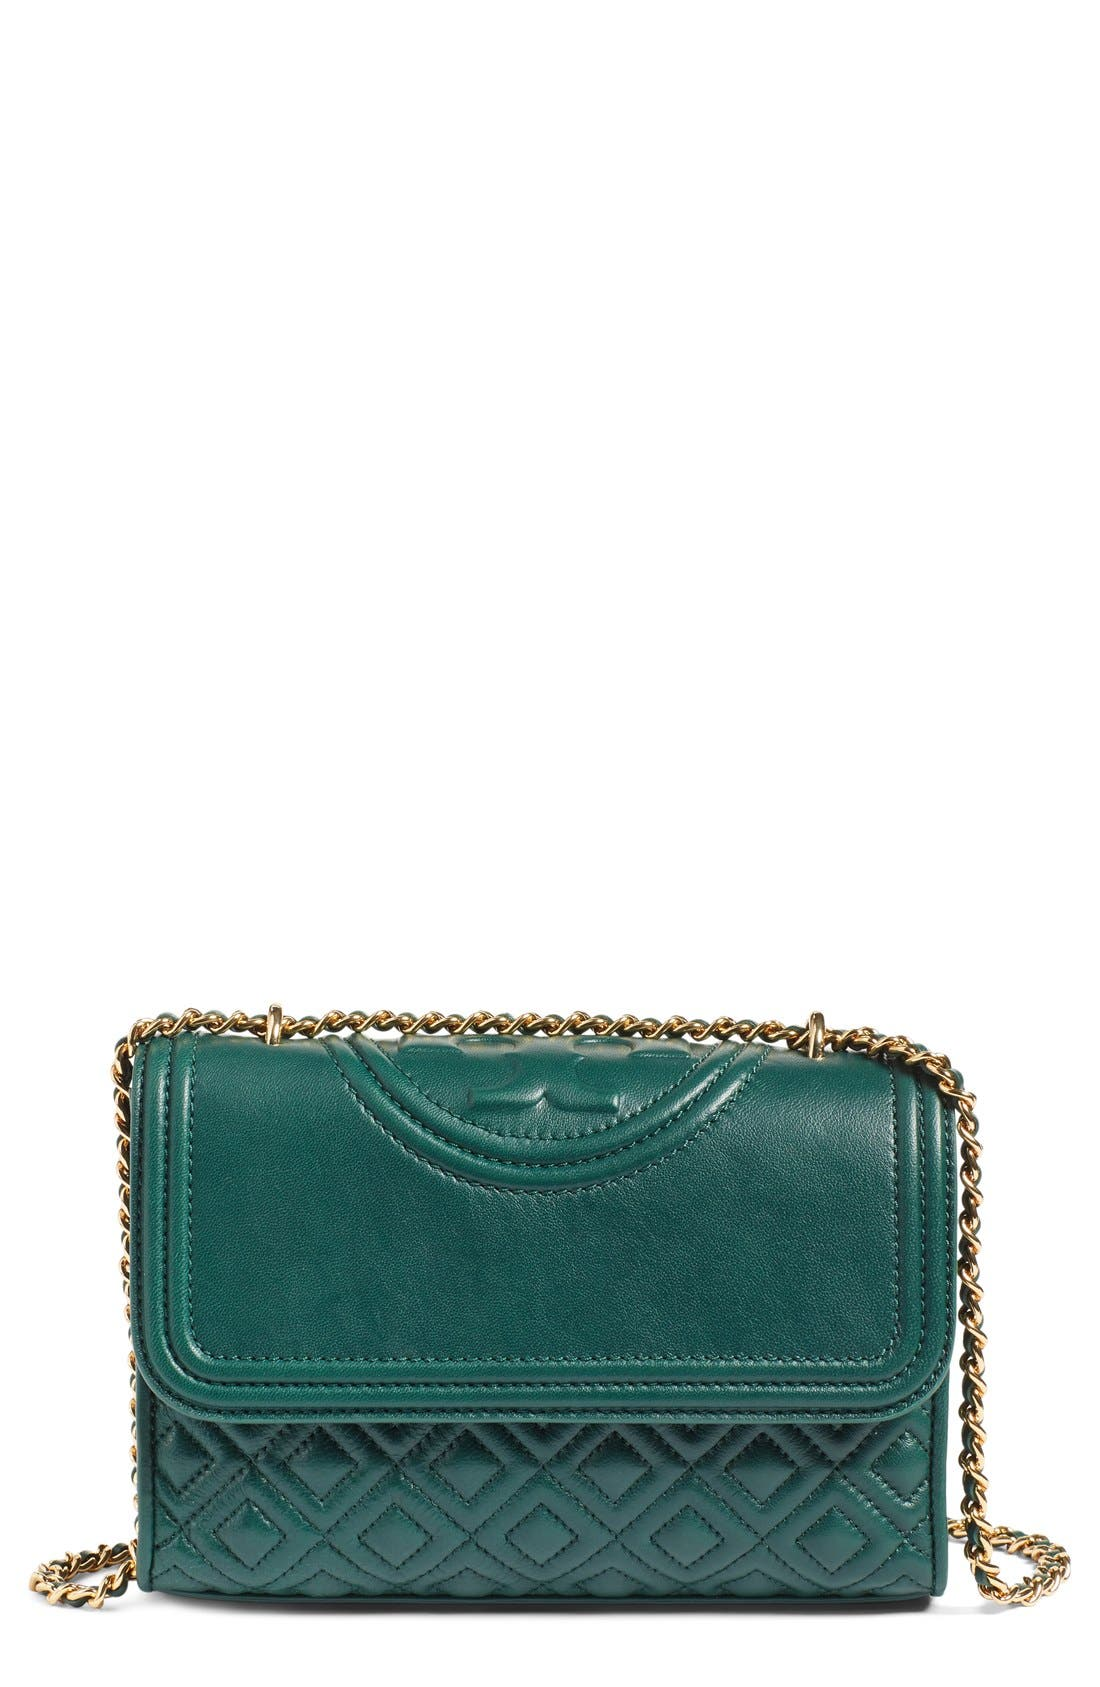 'Small Fleming' Quilted Leather Shoulder Bag,                             Main thumbnail 3, color,